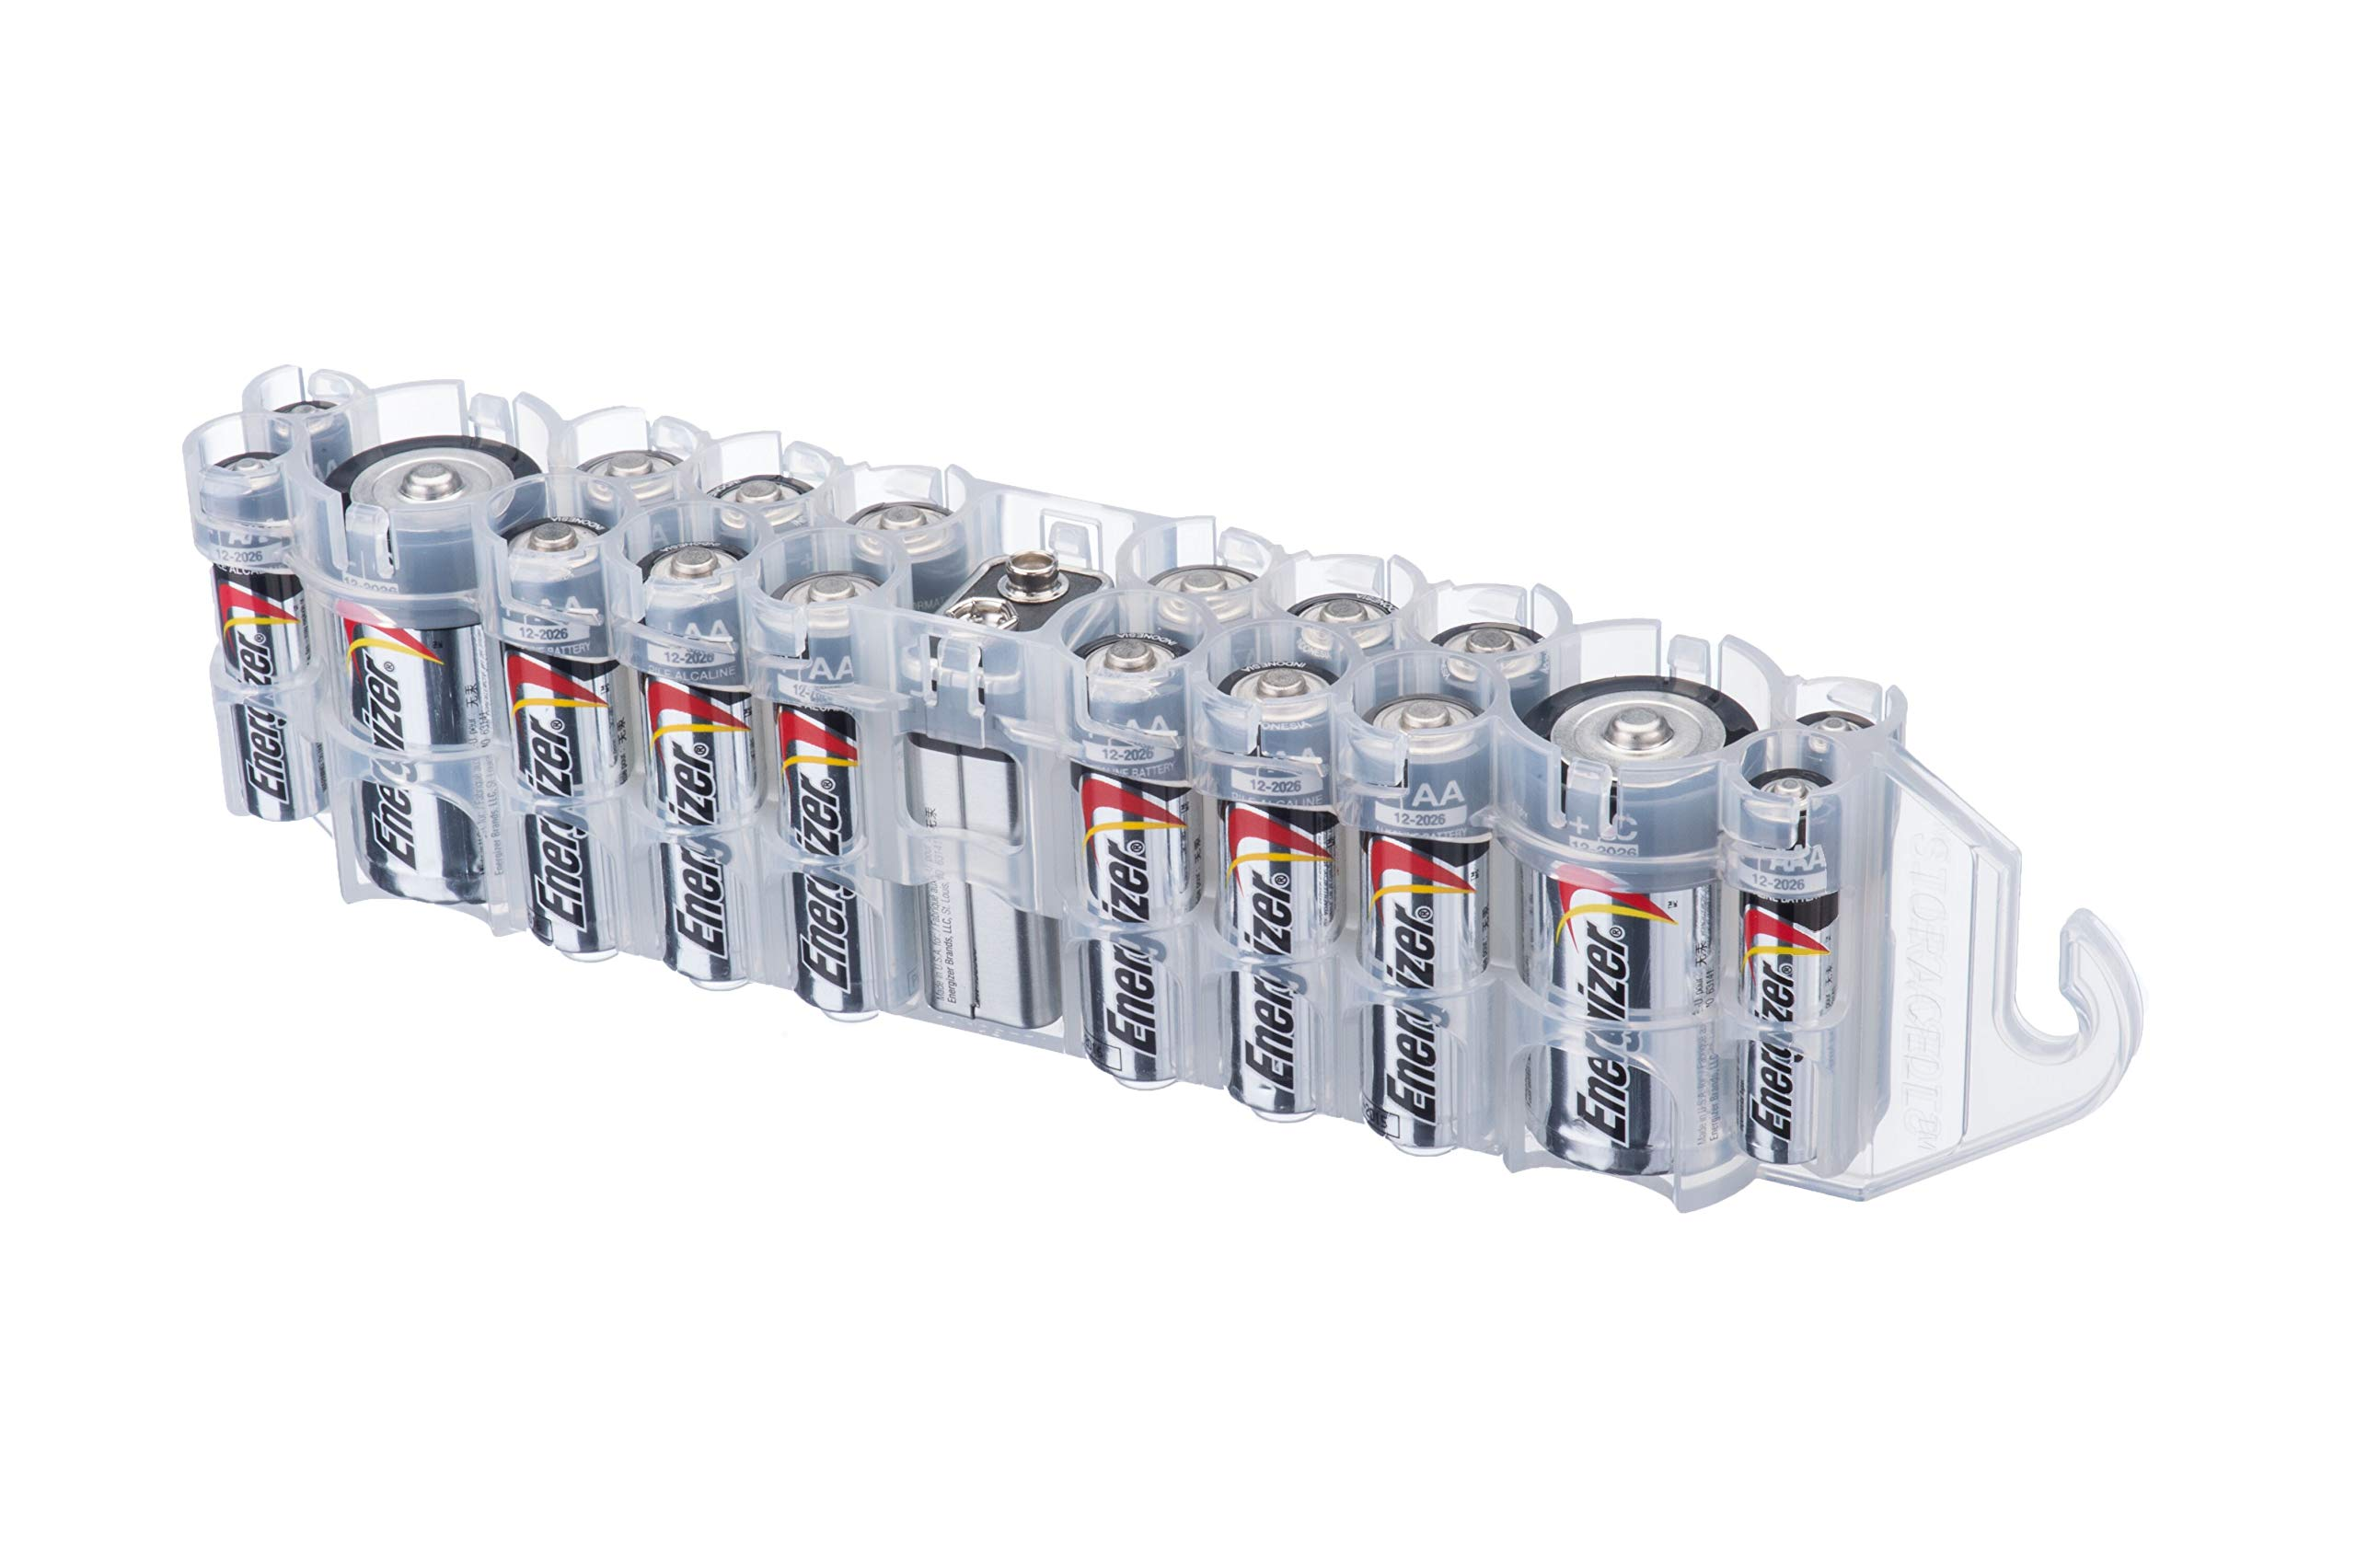 Storacell by Powerpax PBC Original Multi-Pack Battery Caddy, Clear